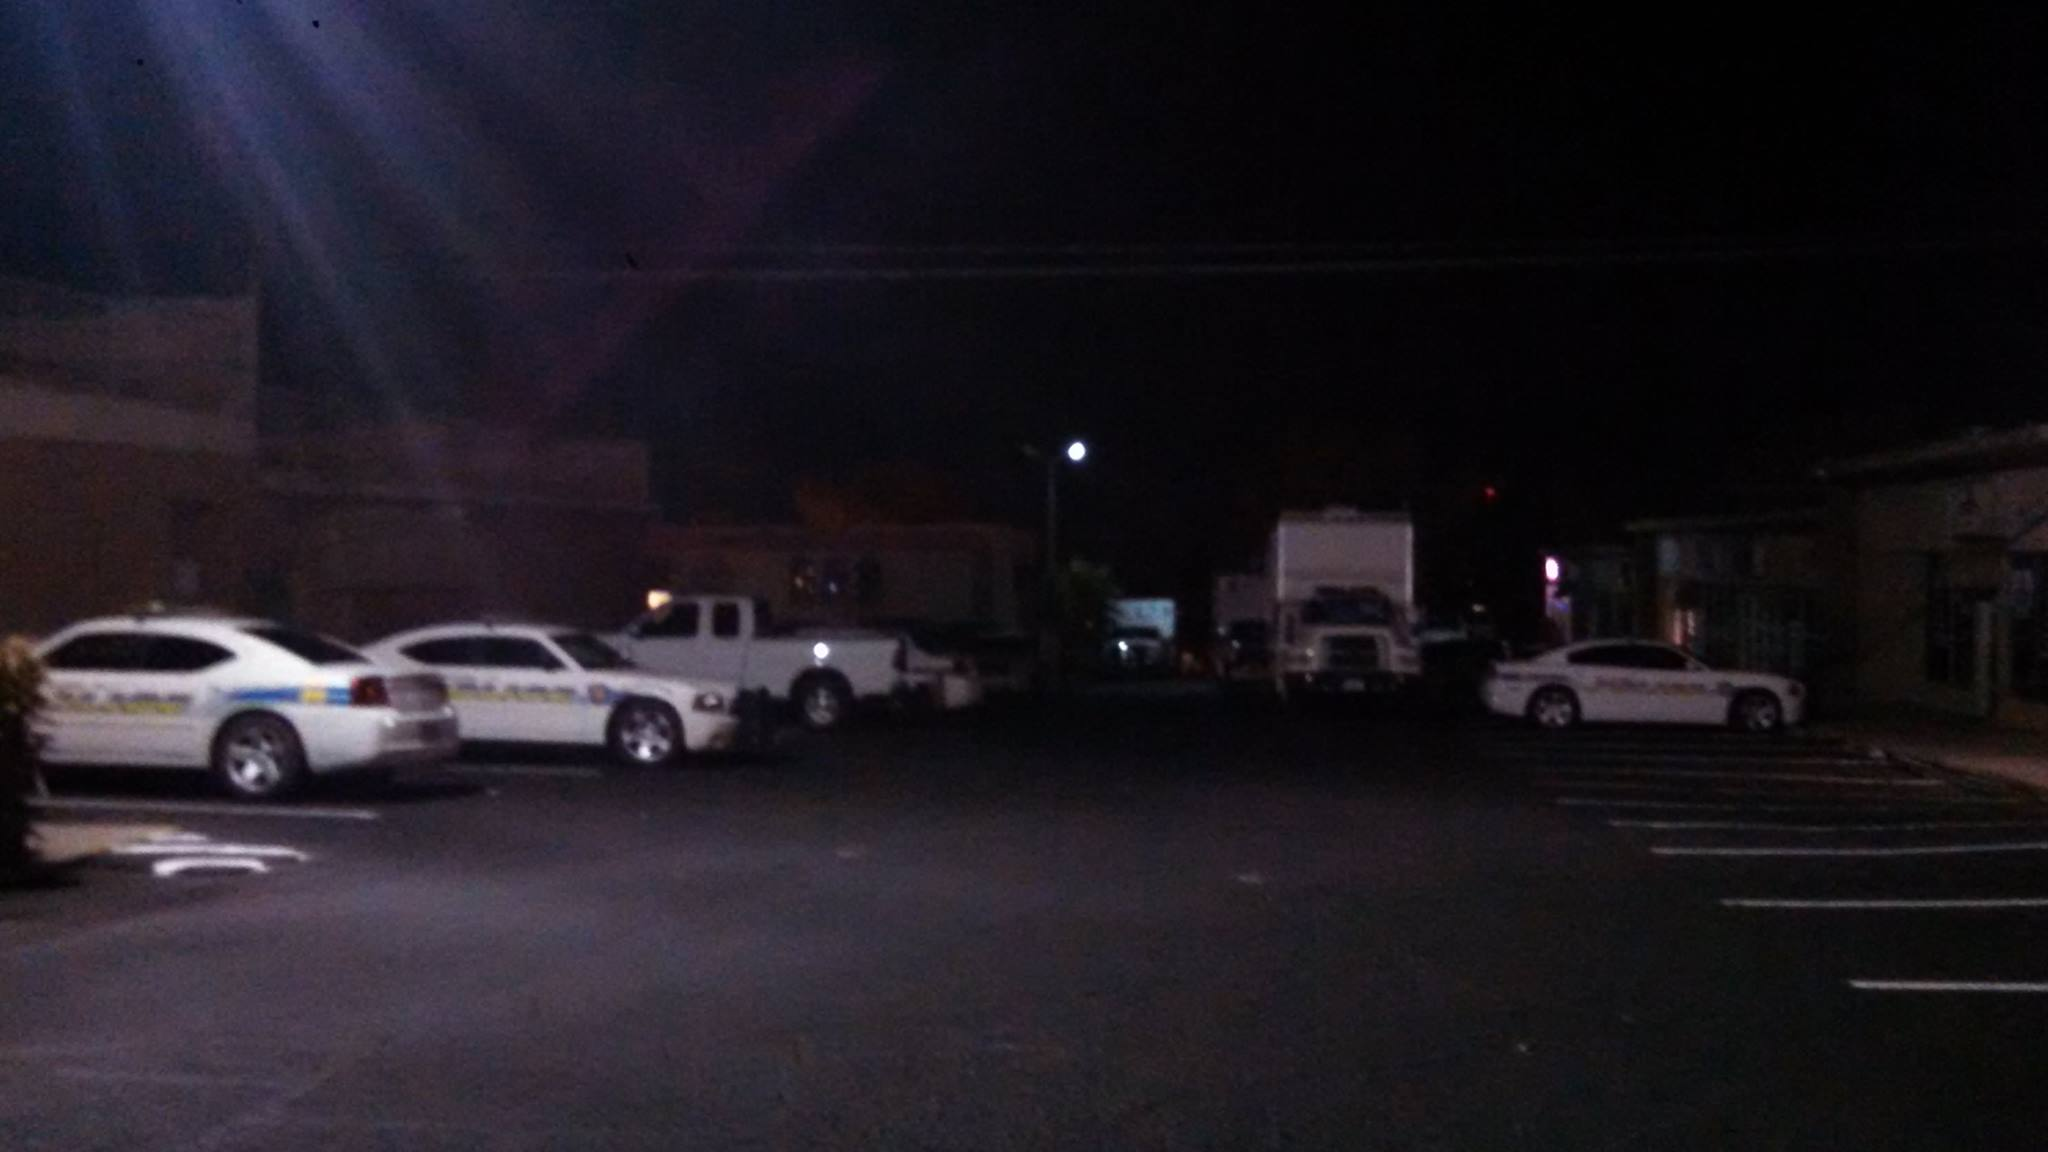 Police media point at Sunburst Shopping Center, 700 E. and Tabernacle in relation to standoff at residential property in the area of 500 E. and St. George Boulevard, St. George, Utah, Dec. 2, 2014 | Photo by Mori Kessler